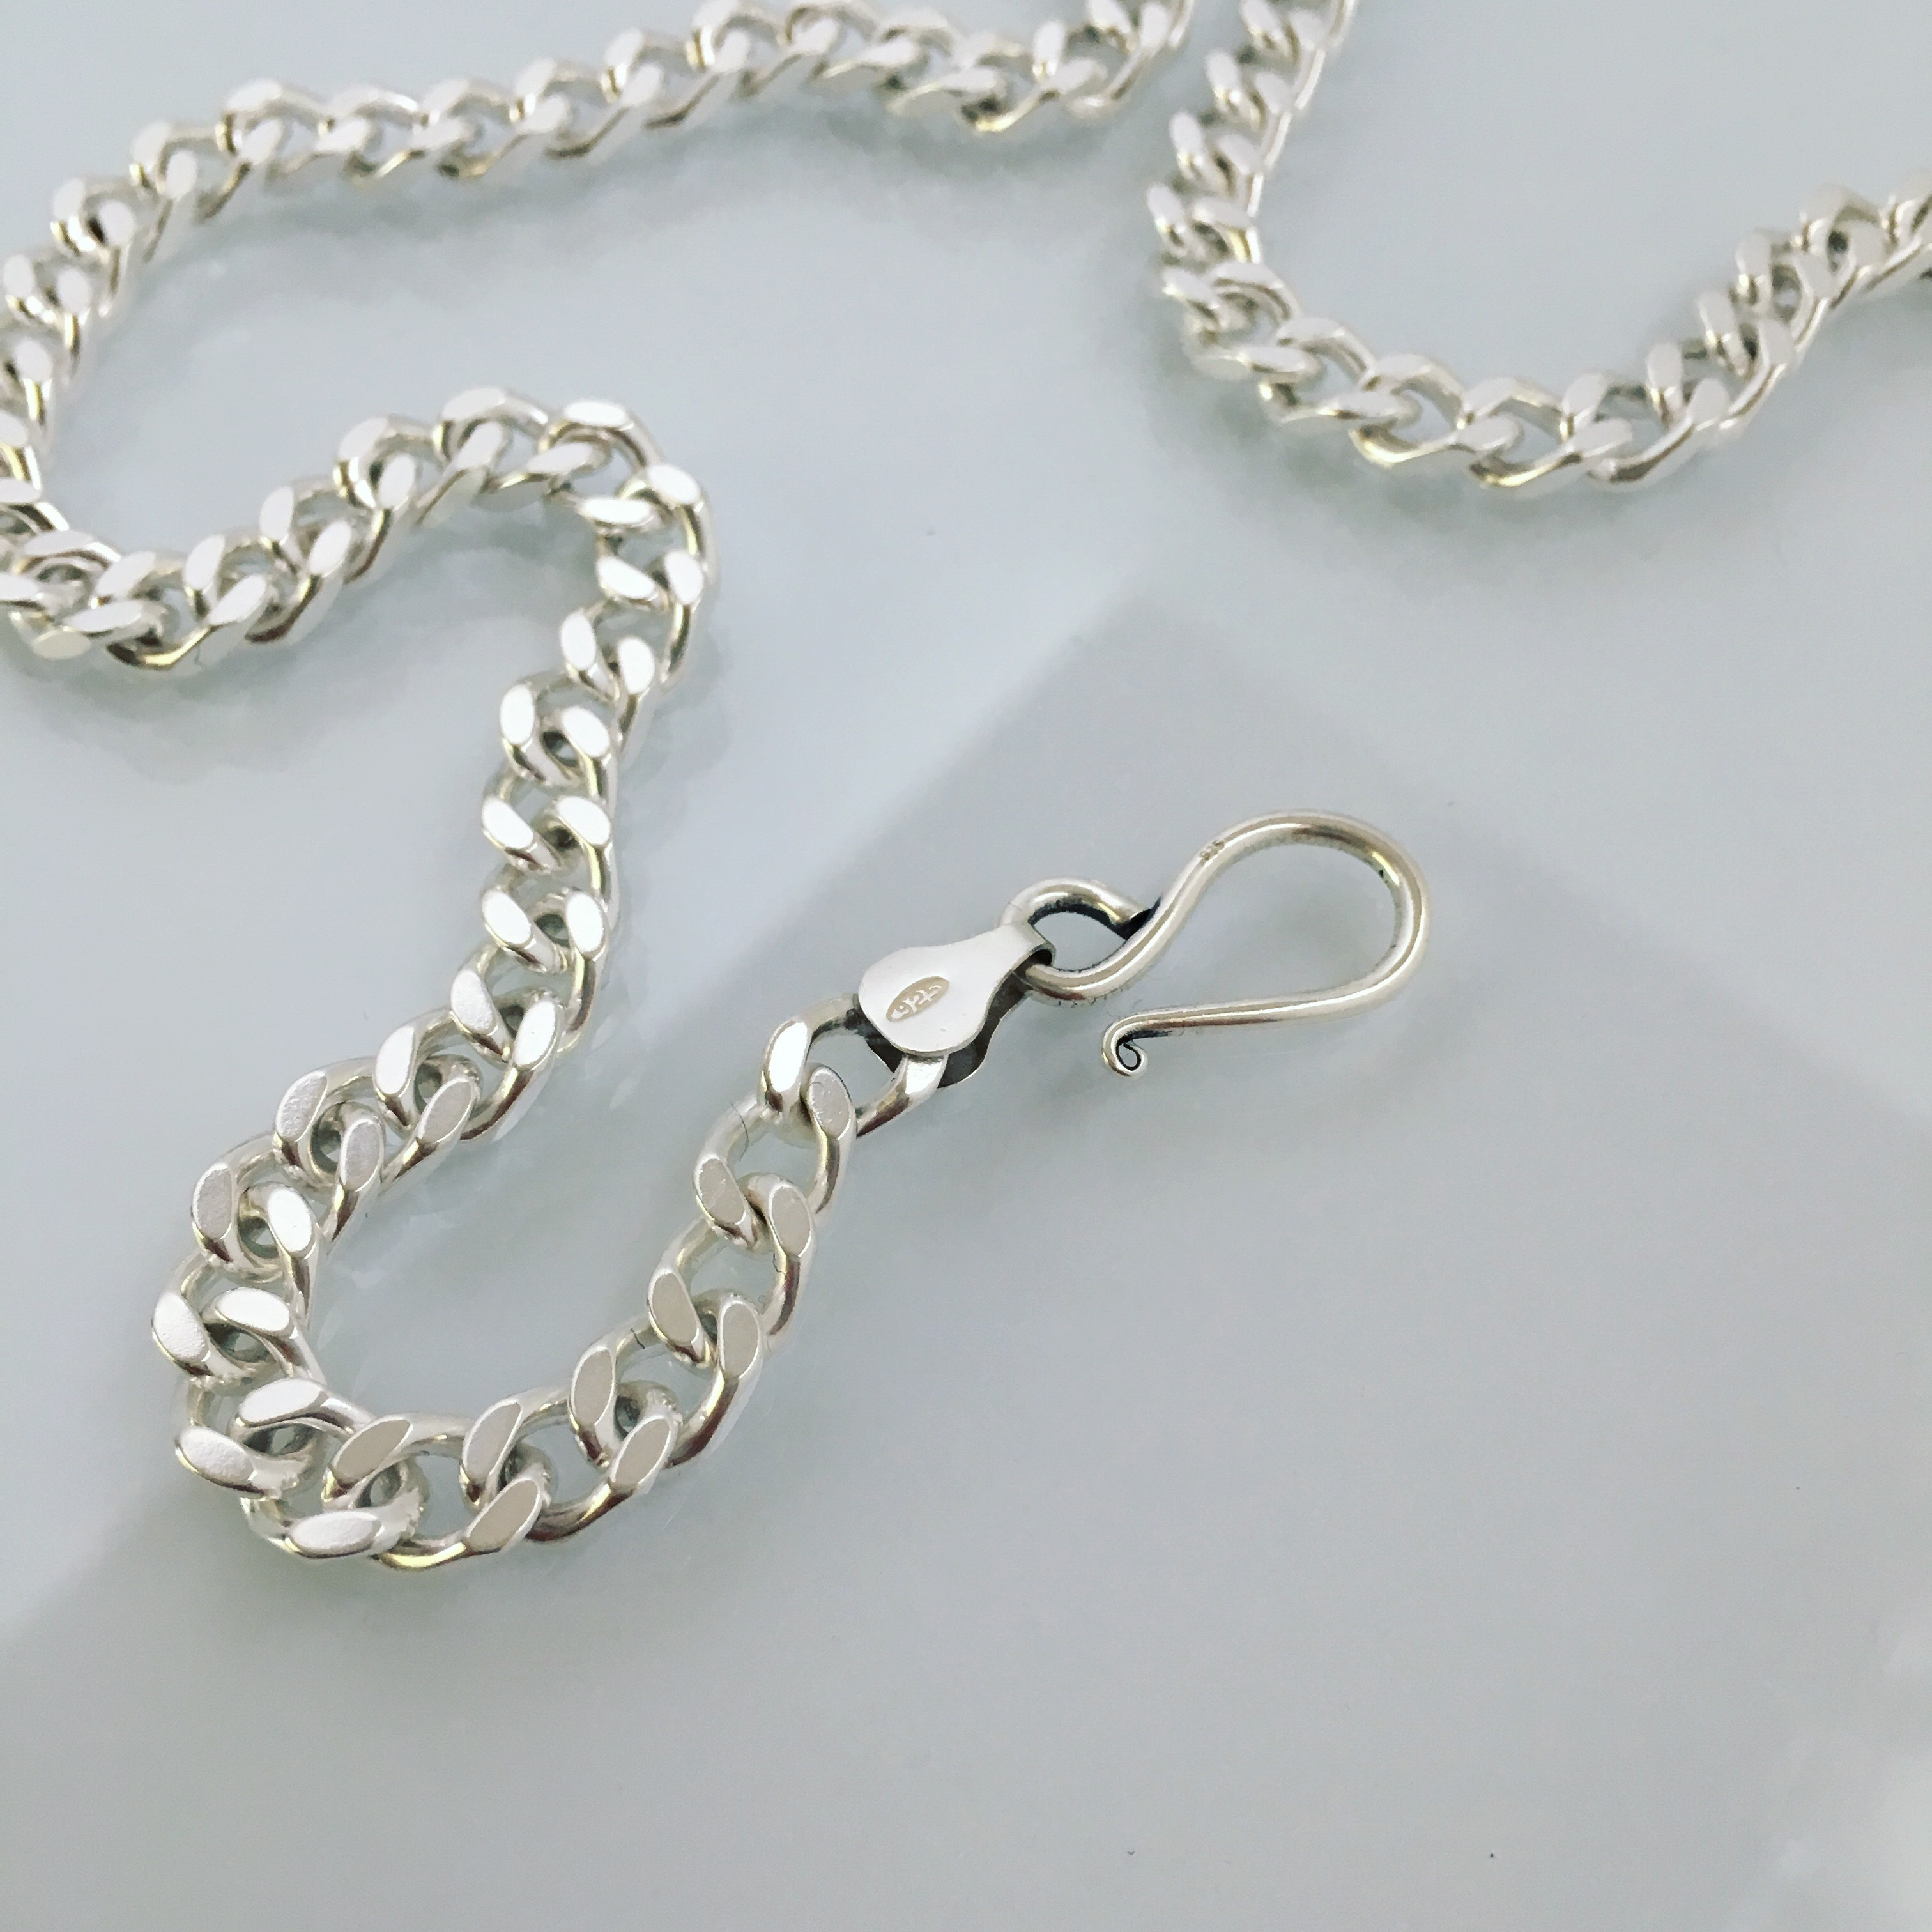 N-S4 silver chain necklace(mens)